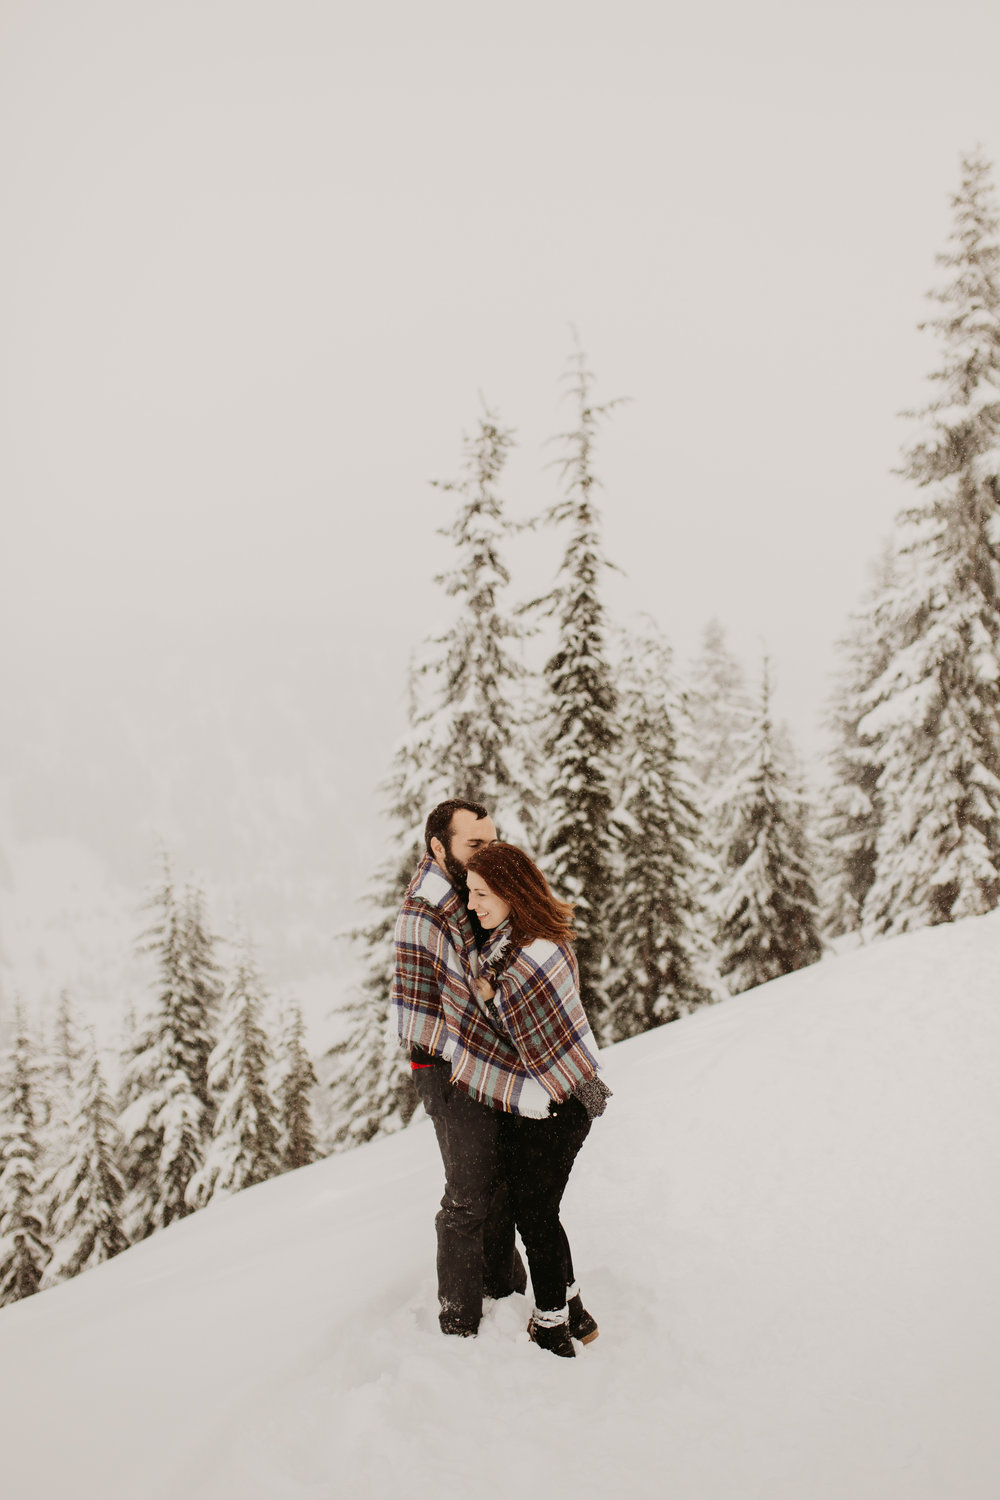 pnw_washington_oregon_elopement_mount_rainer_engagement_wedding_photographer15.jpg